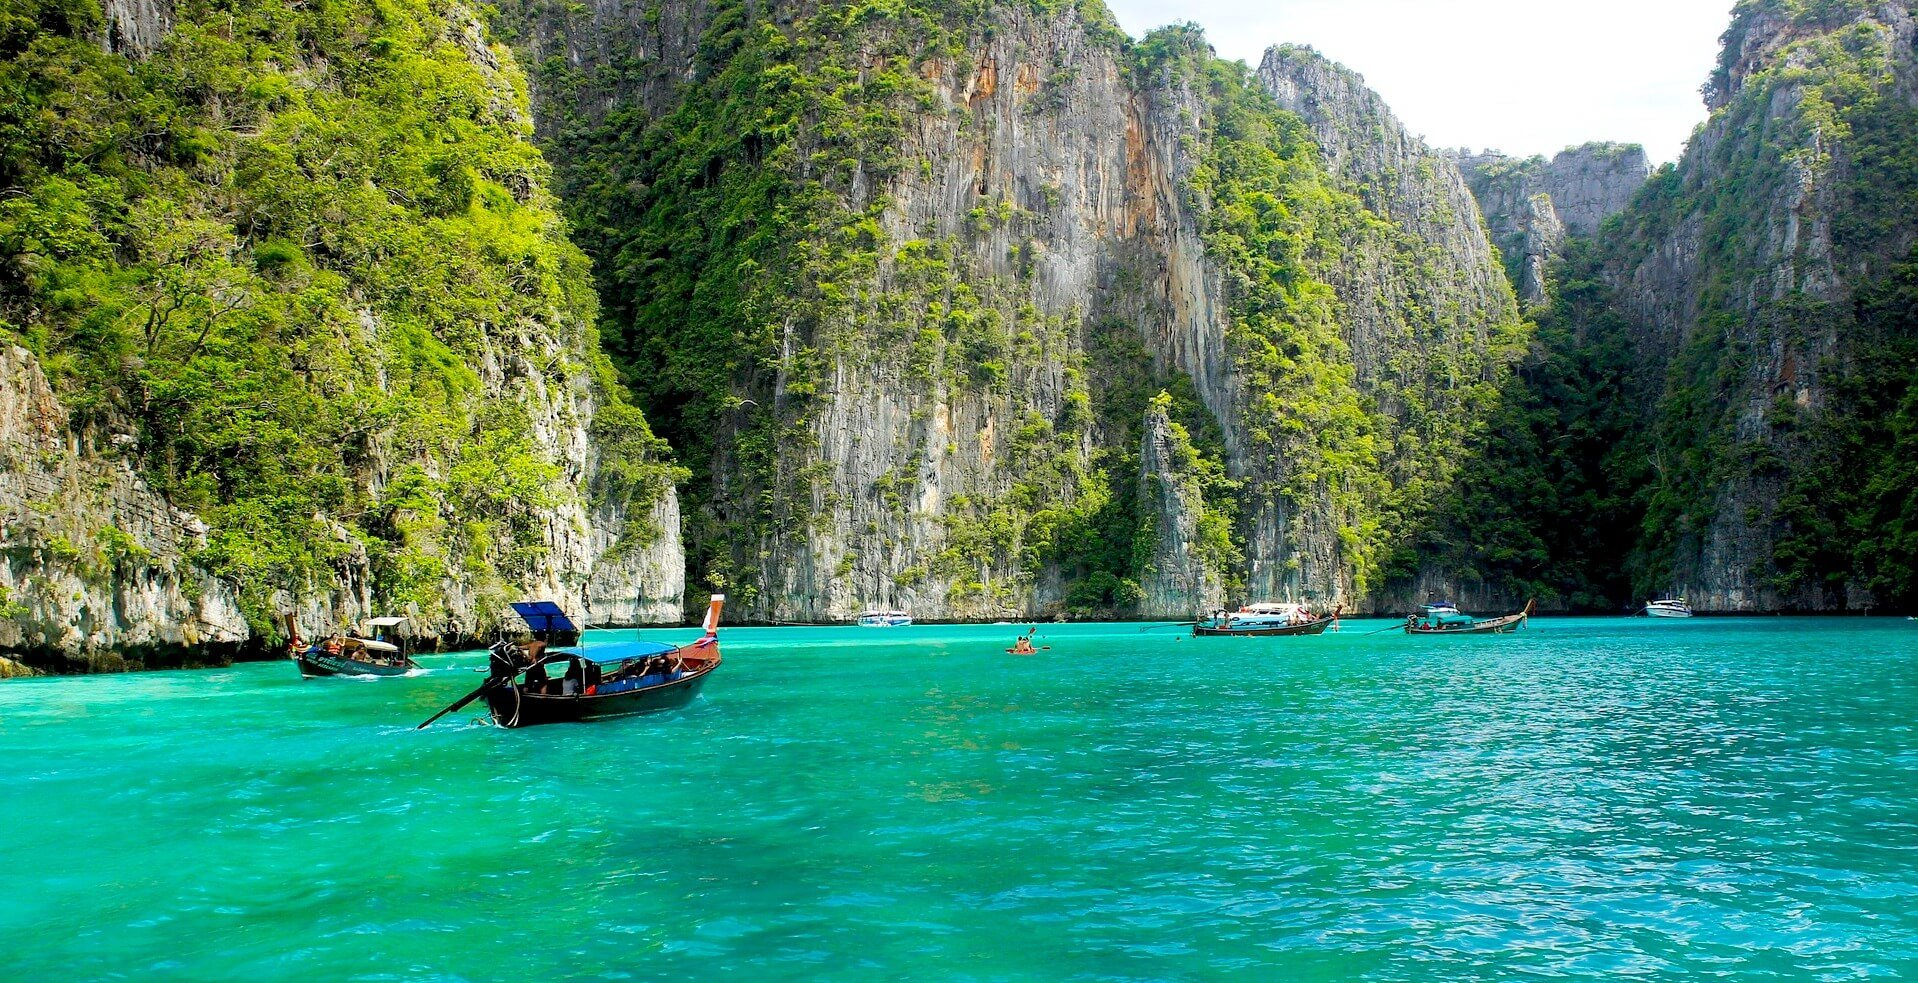 Bucht in Thailand - Koh Phi Phi